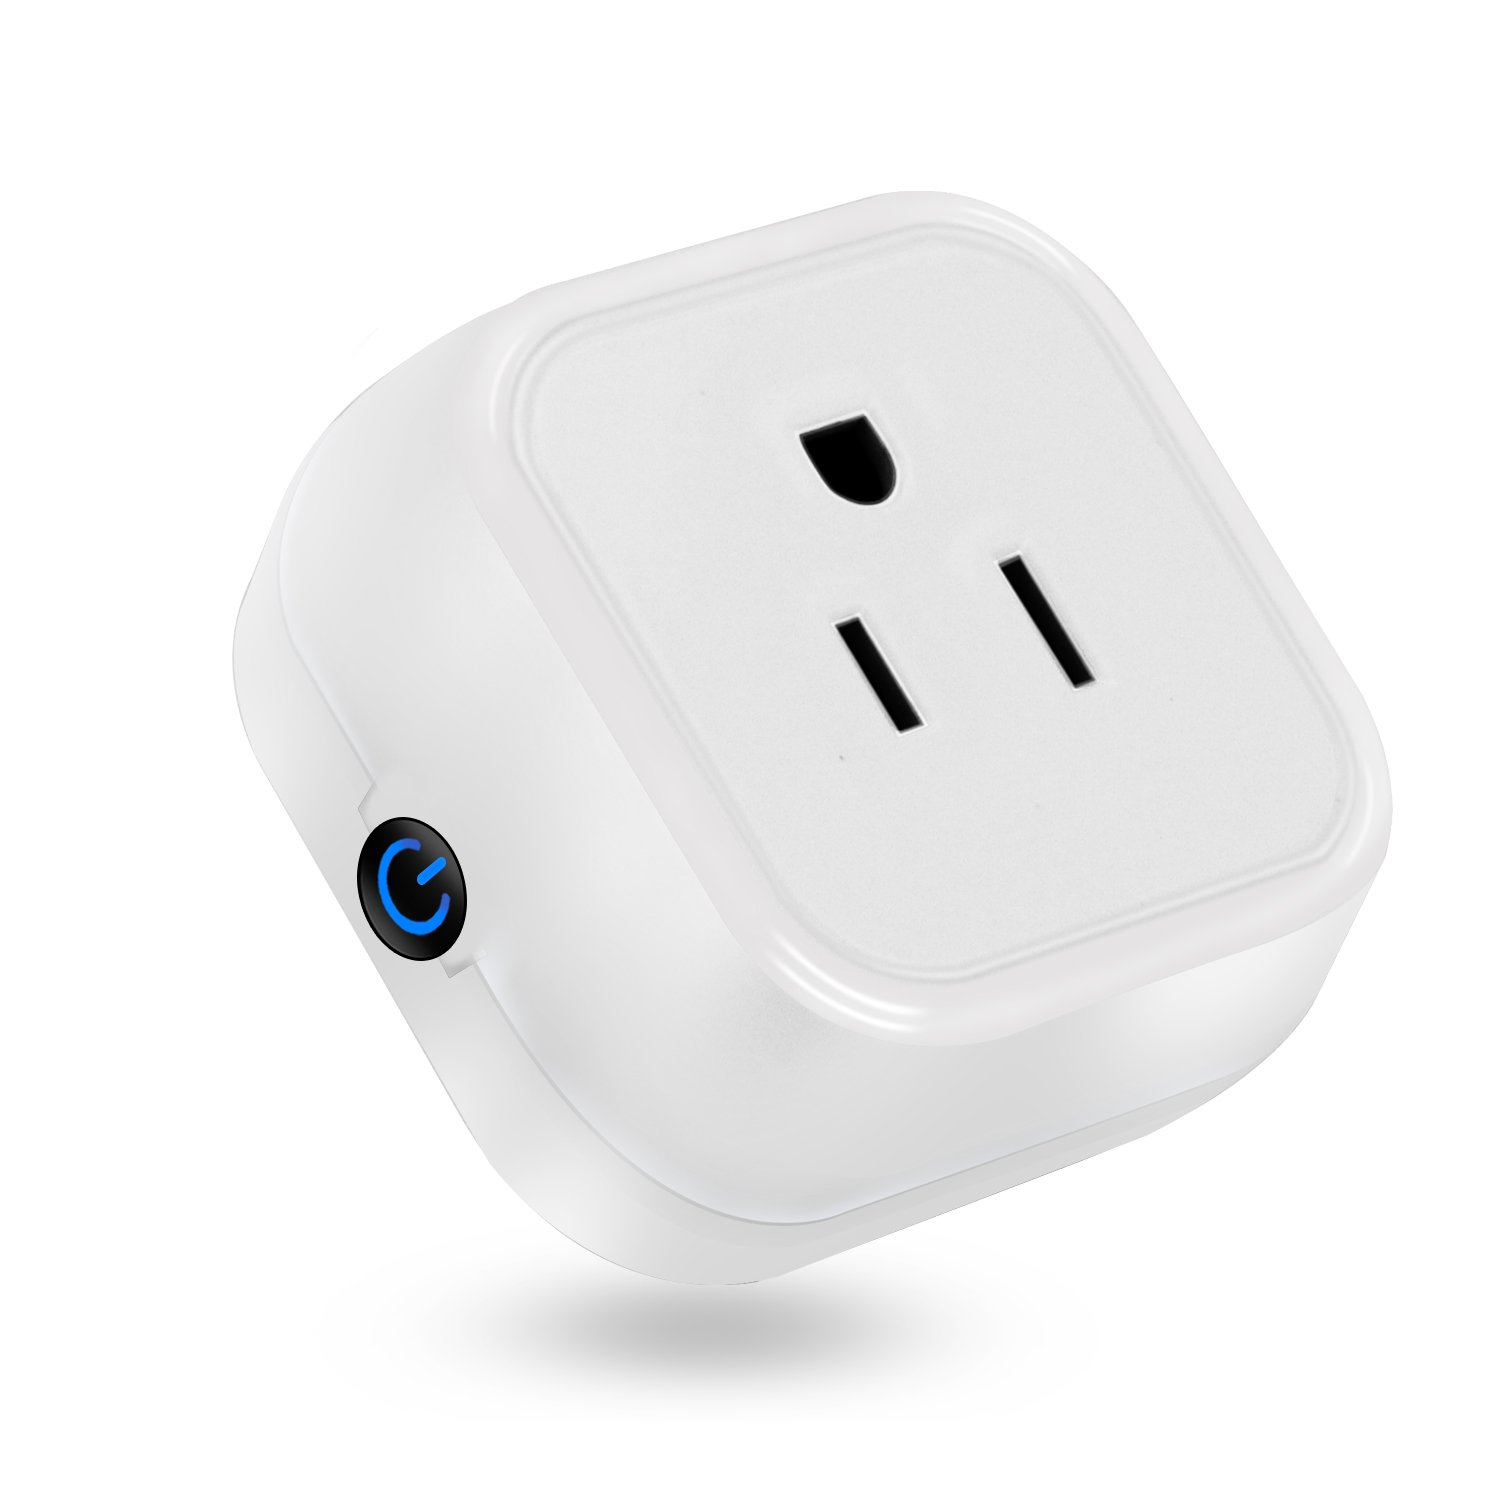 Martin Jerry Mini Wifi Smart Plugs Compatible with Alexa, Google Home, Smart Home Devices to Control Home Appliance from Anywhere, no Hub Required, Wifi Smart Socket (V05) (1 Pack)